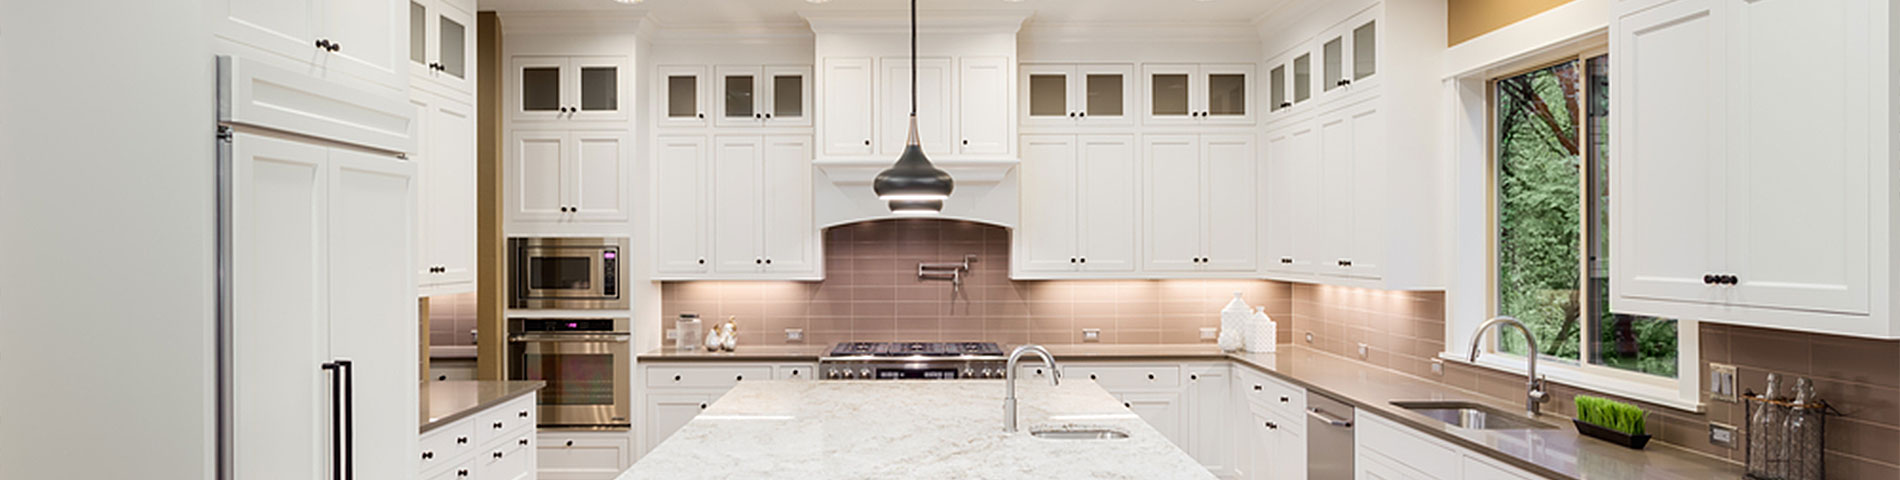 Kitchen Remodeling Excellence In Wichita, KS